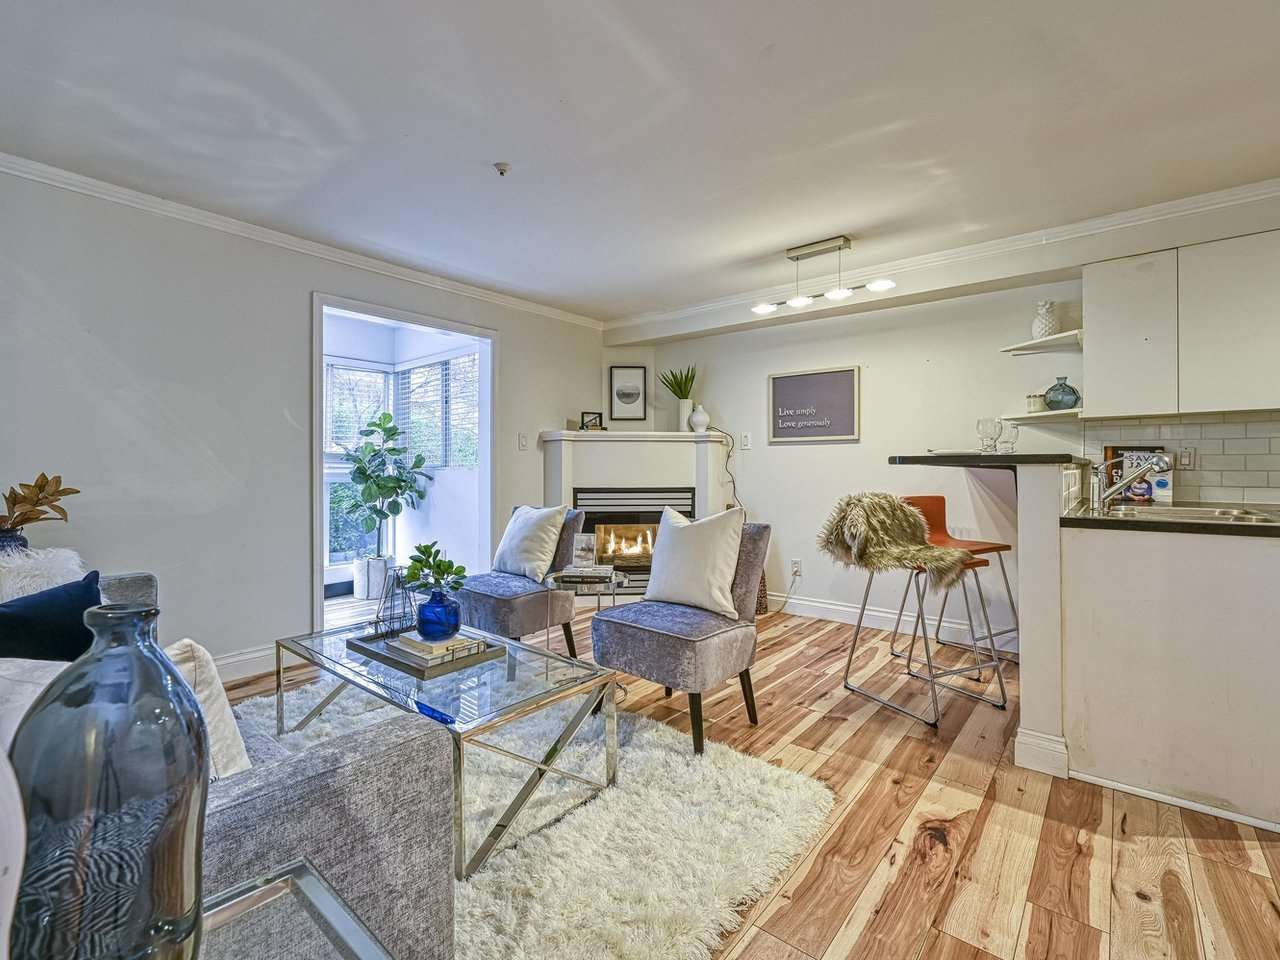 """Main Photo: 211 2211 WALL Street in Vancouver: Hastings Condo for sale in """"PACIFIC LANDING"""" (Vancouver East)  : MLS®# R2544434"""